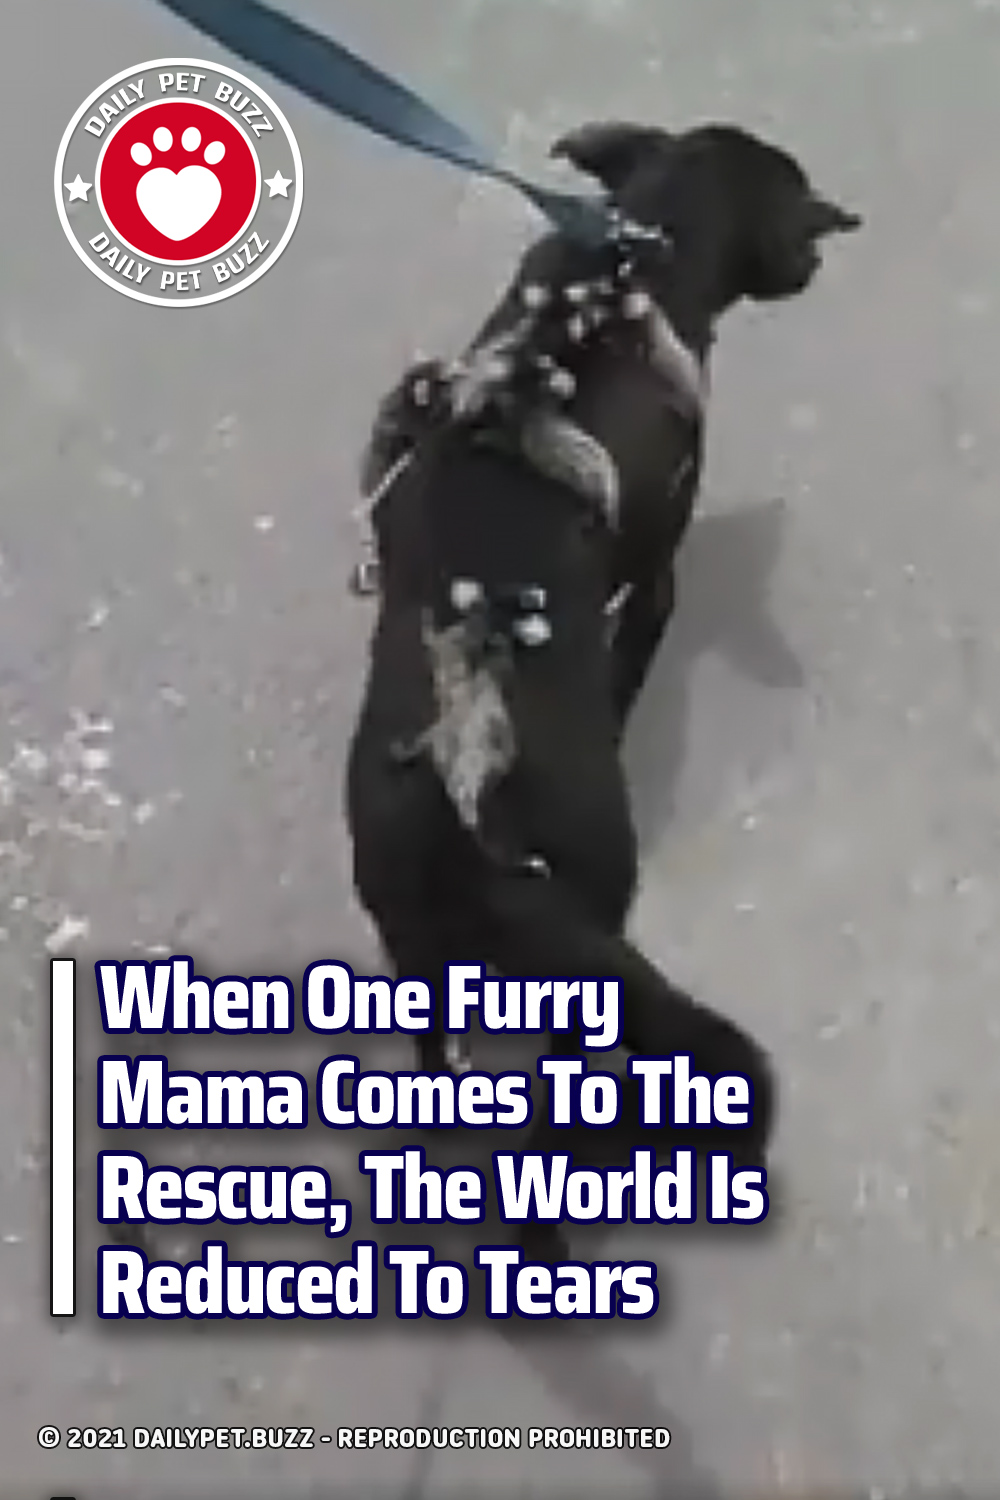 When One Furry Mama Comes To The Rescue, The World Is Reduced To Tears